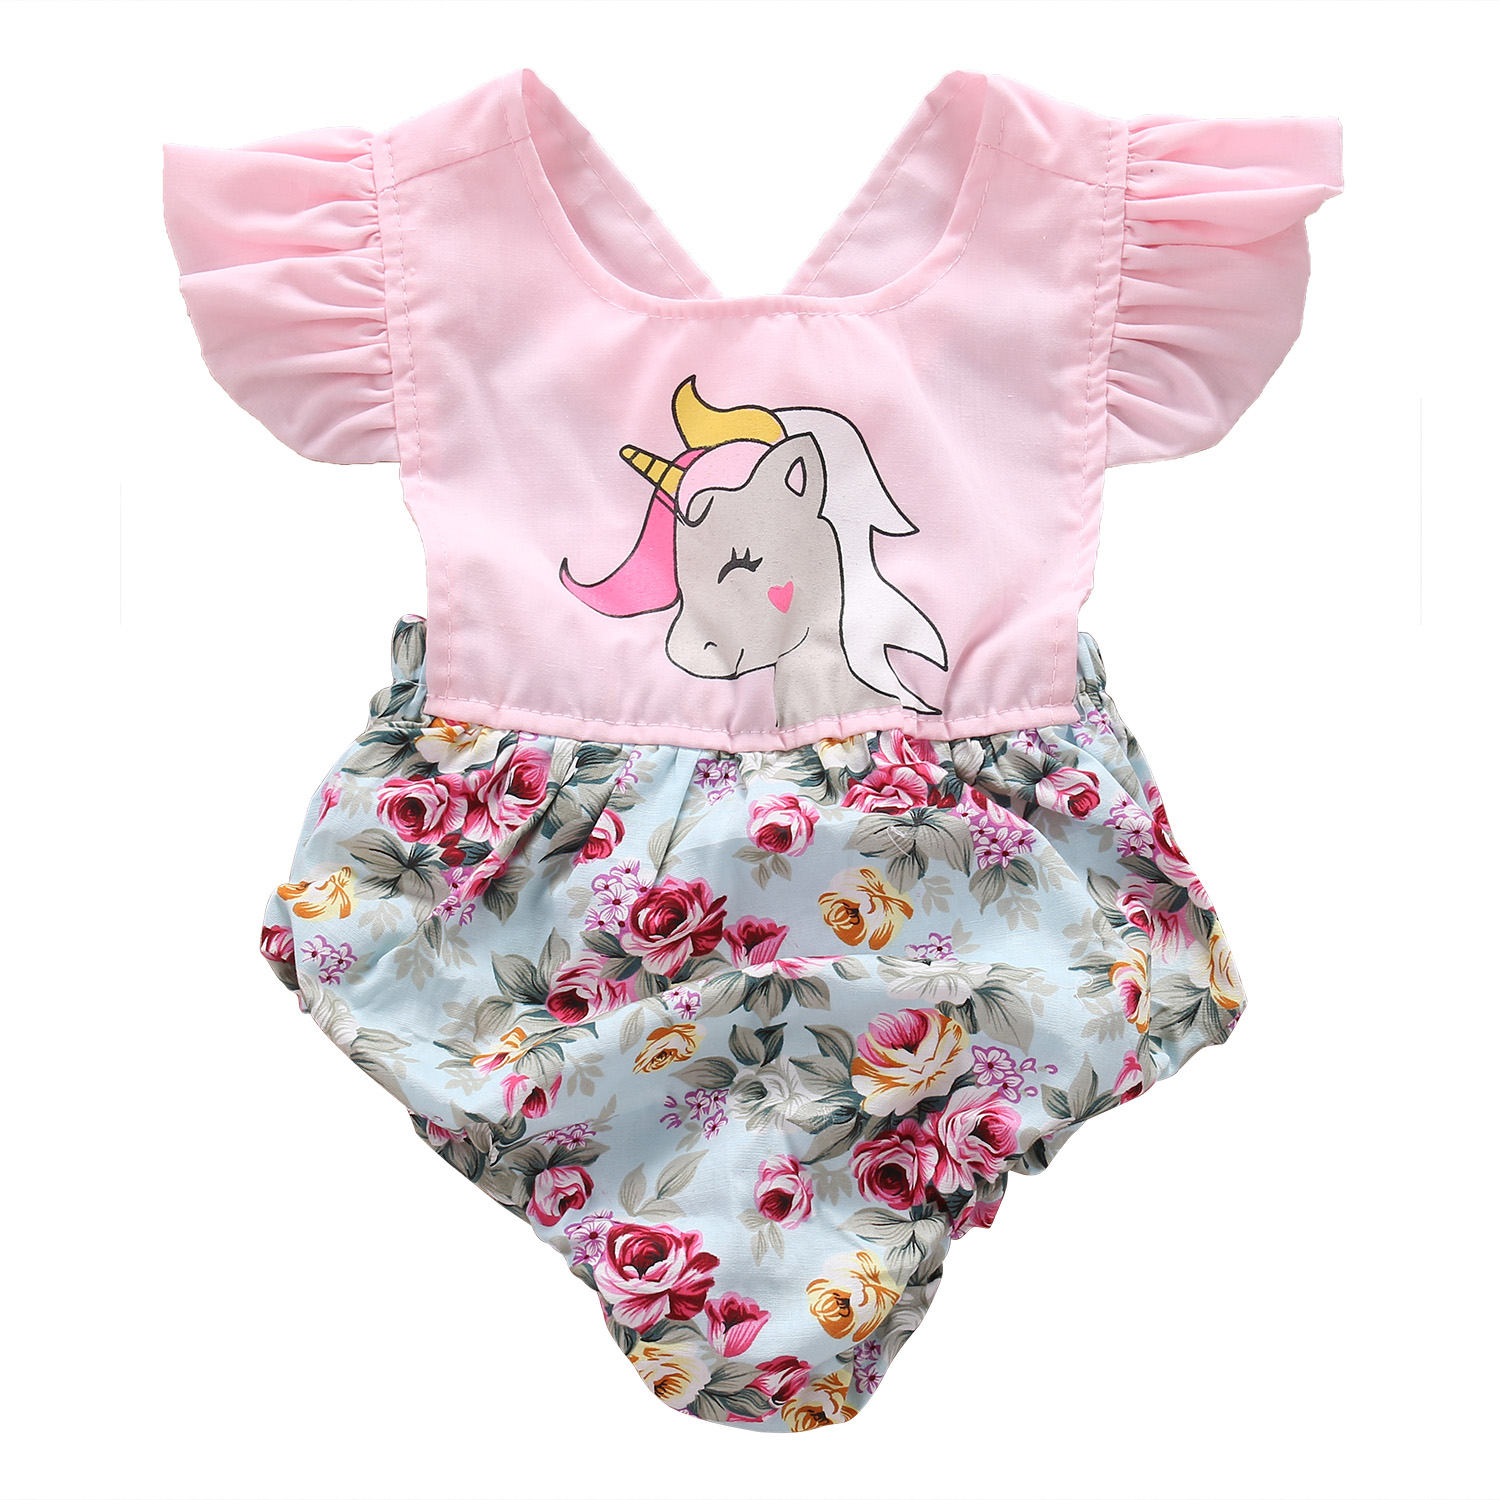 2017 Adorable Newborn Infant Baby Girls Floral Unicorn Romper Jumpsuit One-Pieces Outfits Summer Clothes newborn infant baby girl clothes strap lace floral romper jumpsuit outfit summer cotton backless one pieces outfit baby onesie